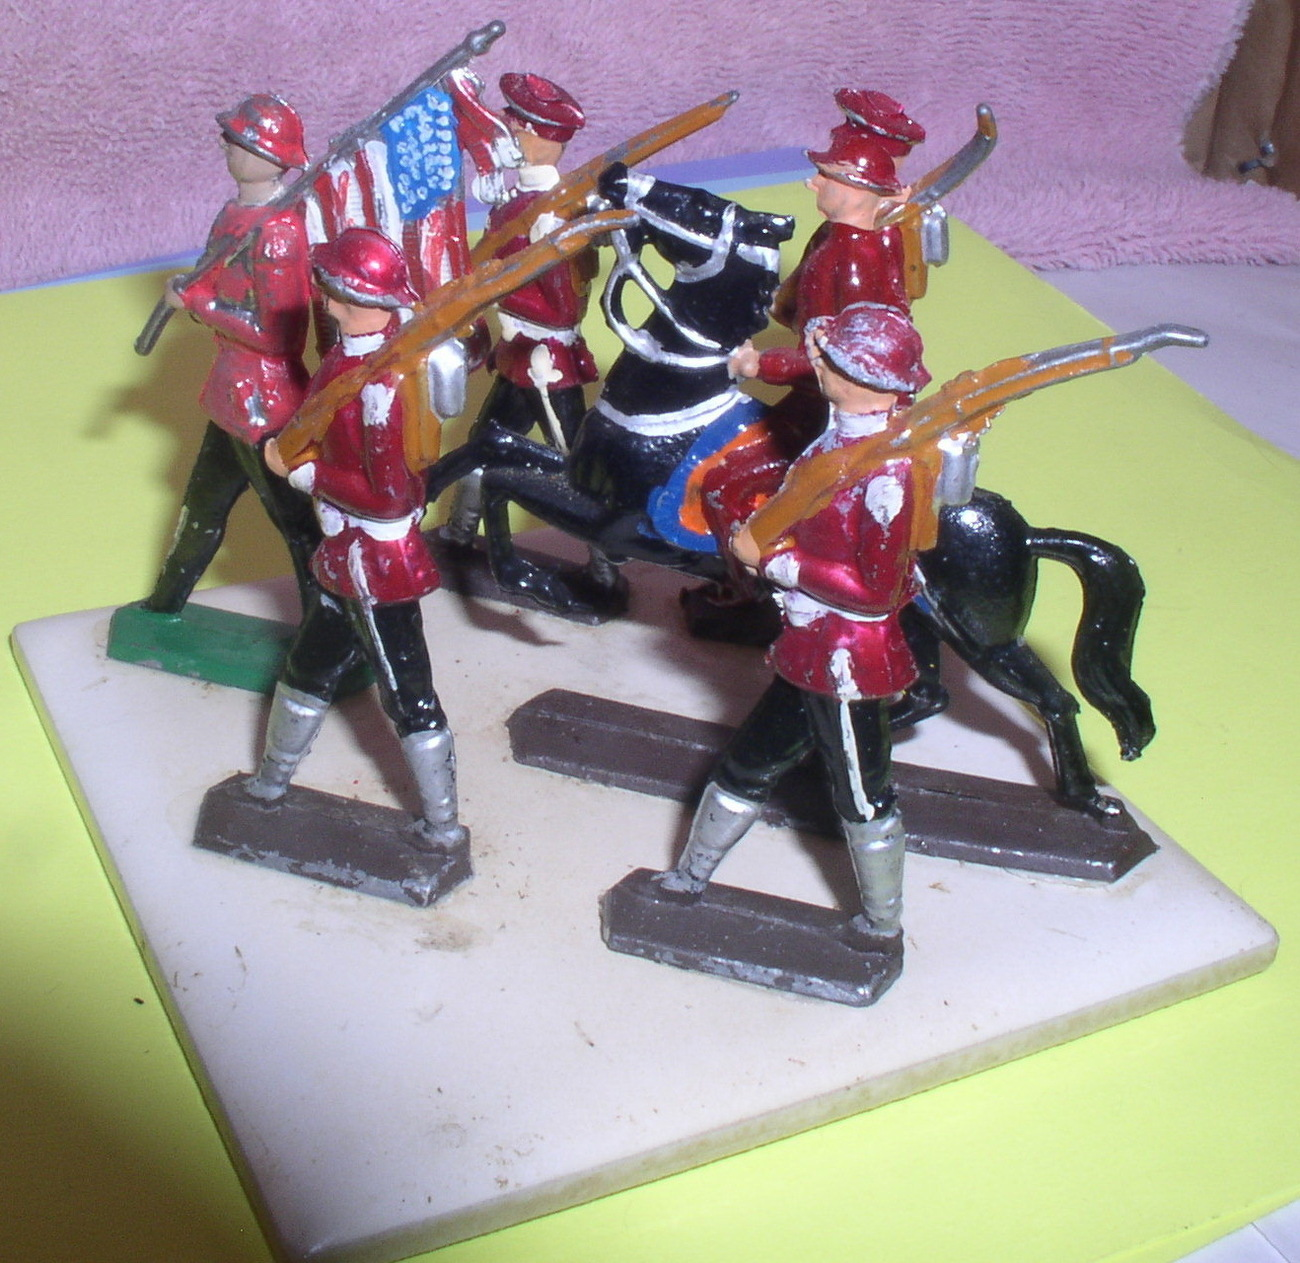 6 Lead  American soldiers hand painted on a tile which is marked Japan